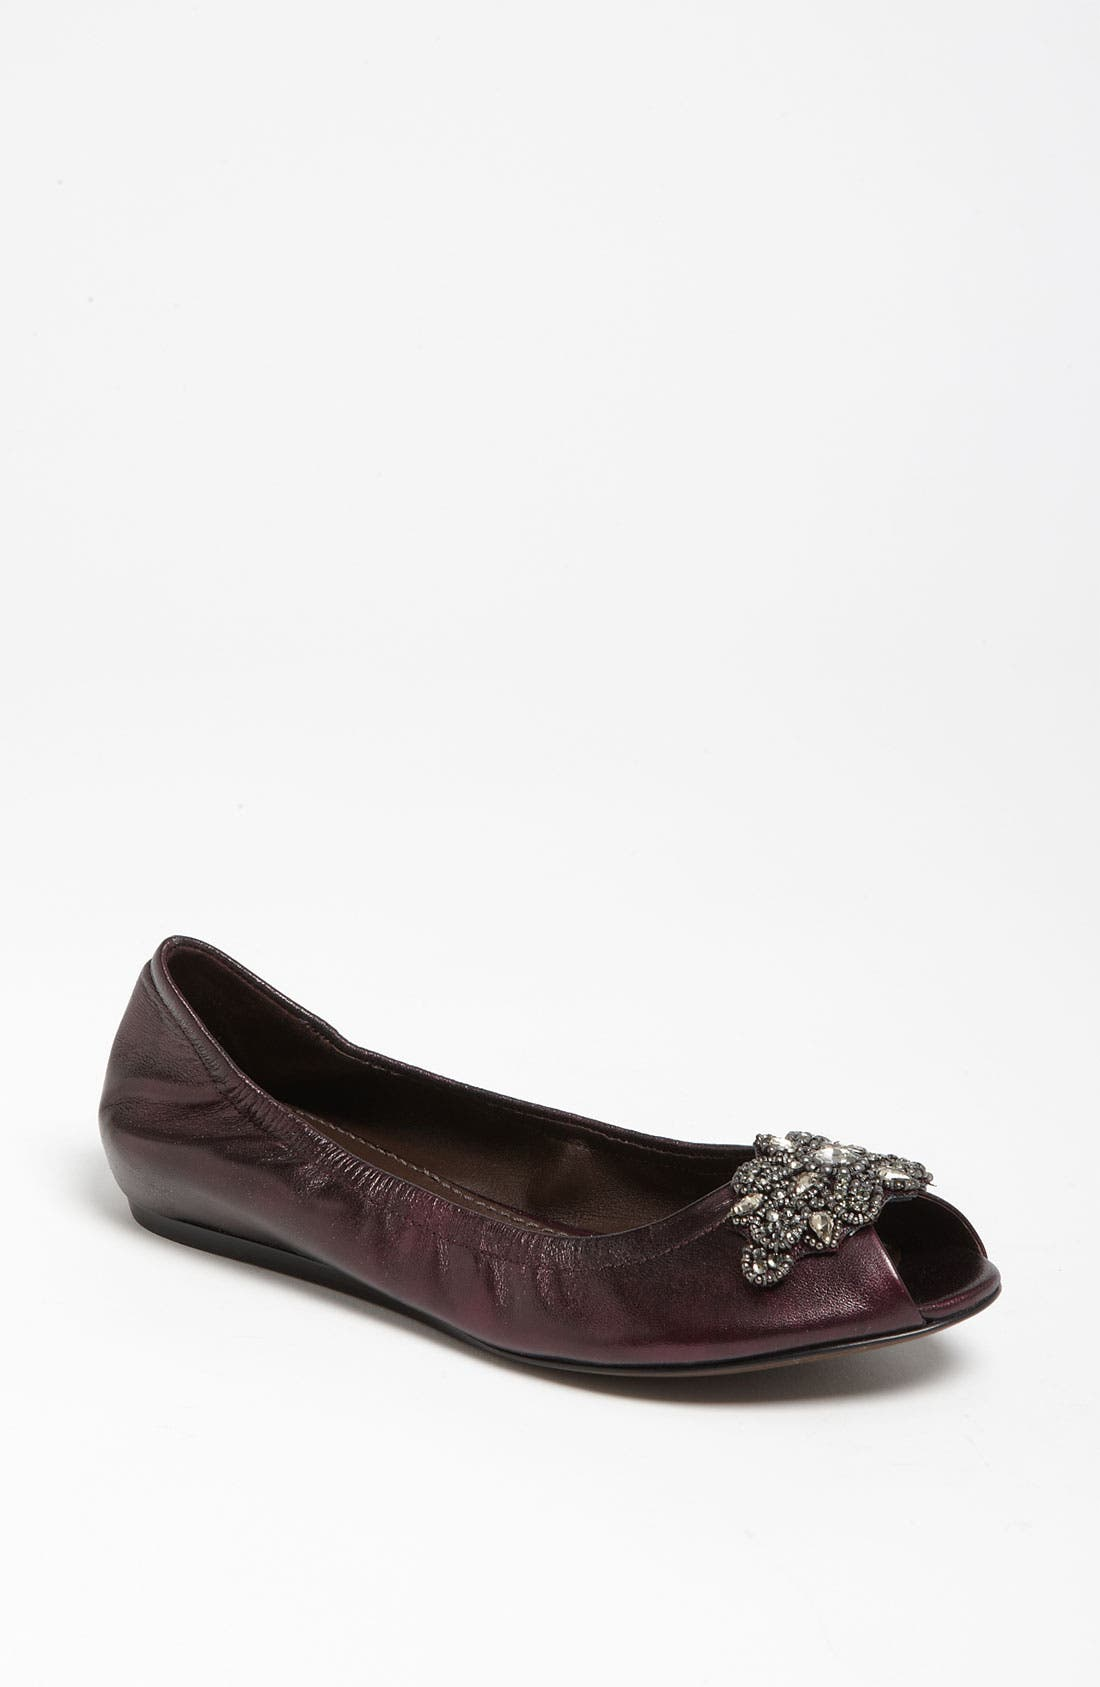 Alternate Image 1 Selected - Vera Wang Footwear 'Lanelle' Hidden Wedge Flat (Nordstrom Exclusive)